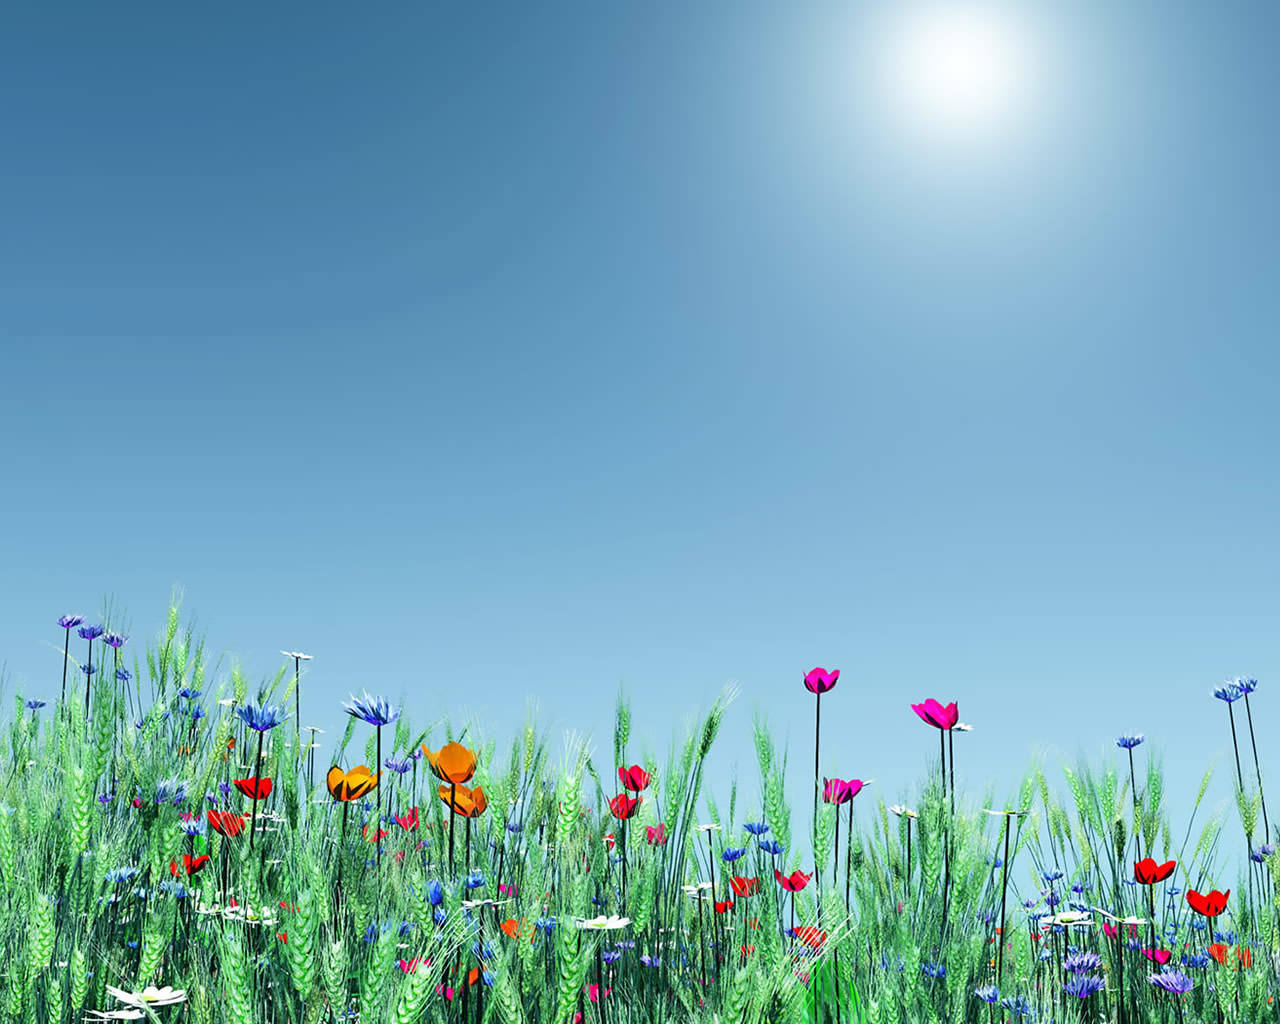 Spring Flowers Wallpaper 1280x1024